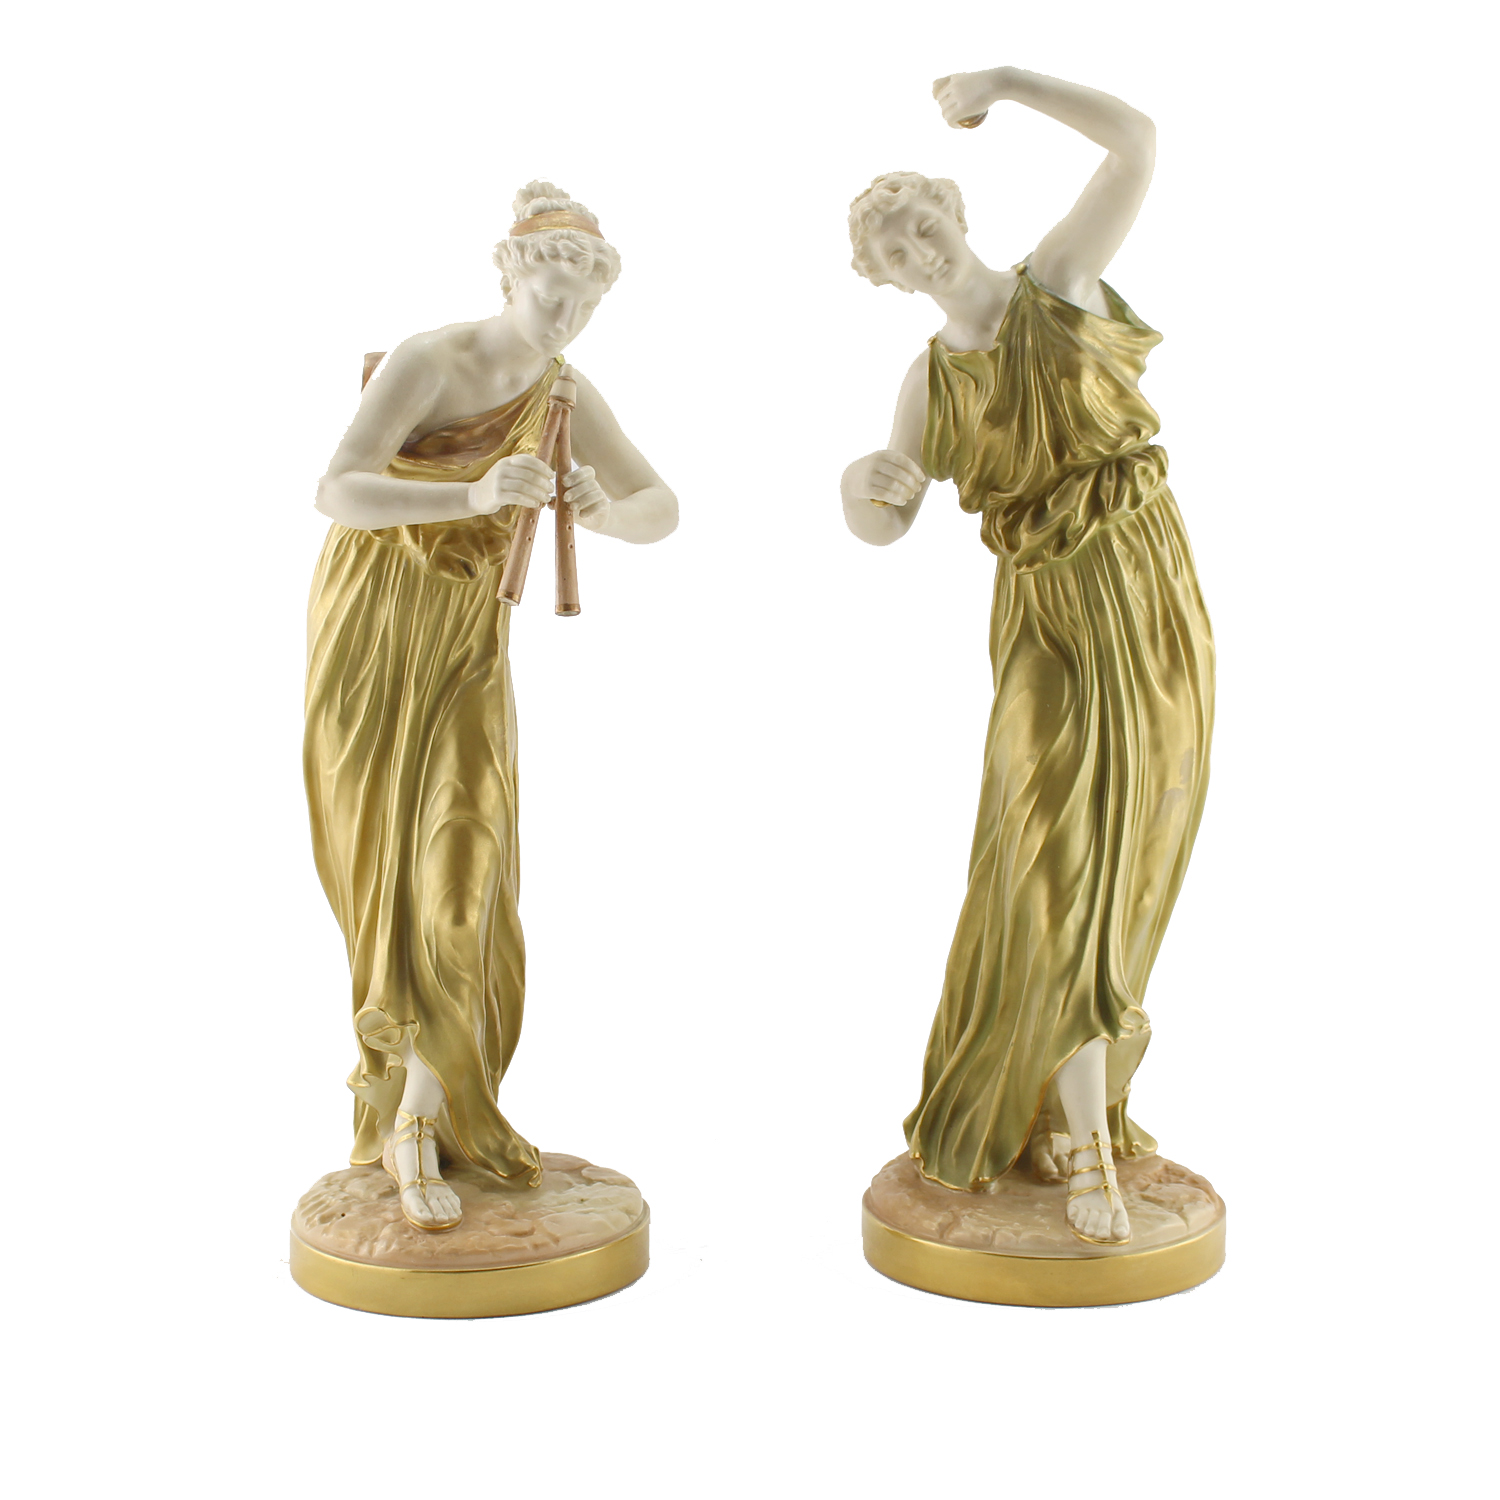 Royal Worcester Pair of Greek Figurines , Modelled by James Hadley, 1897